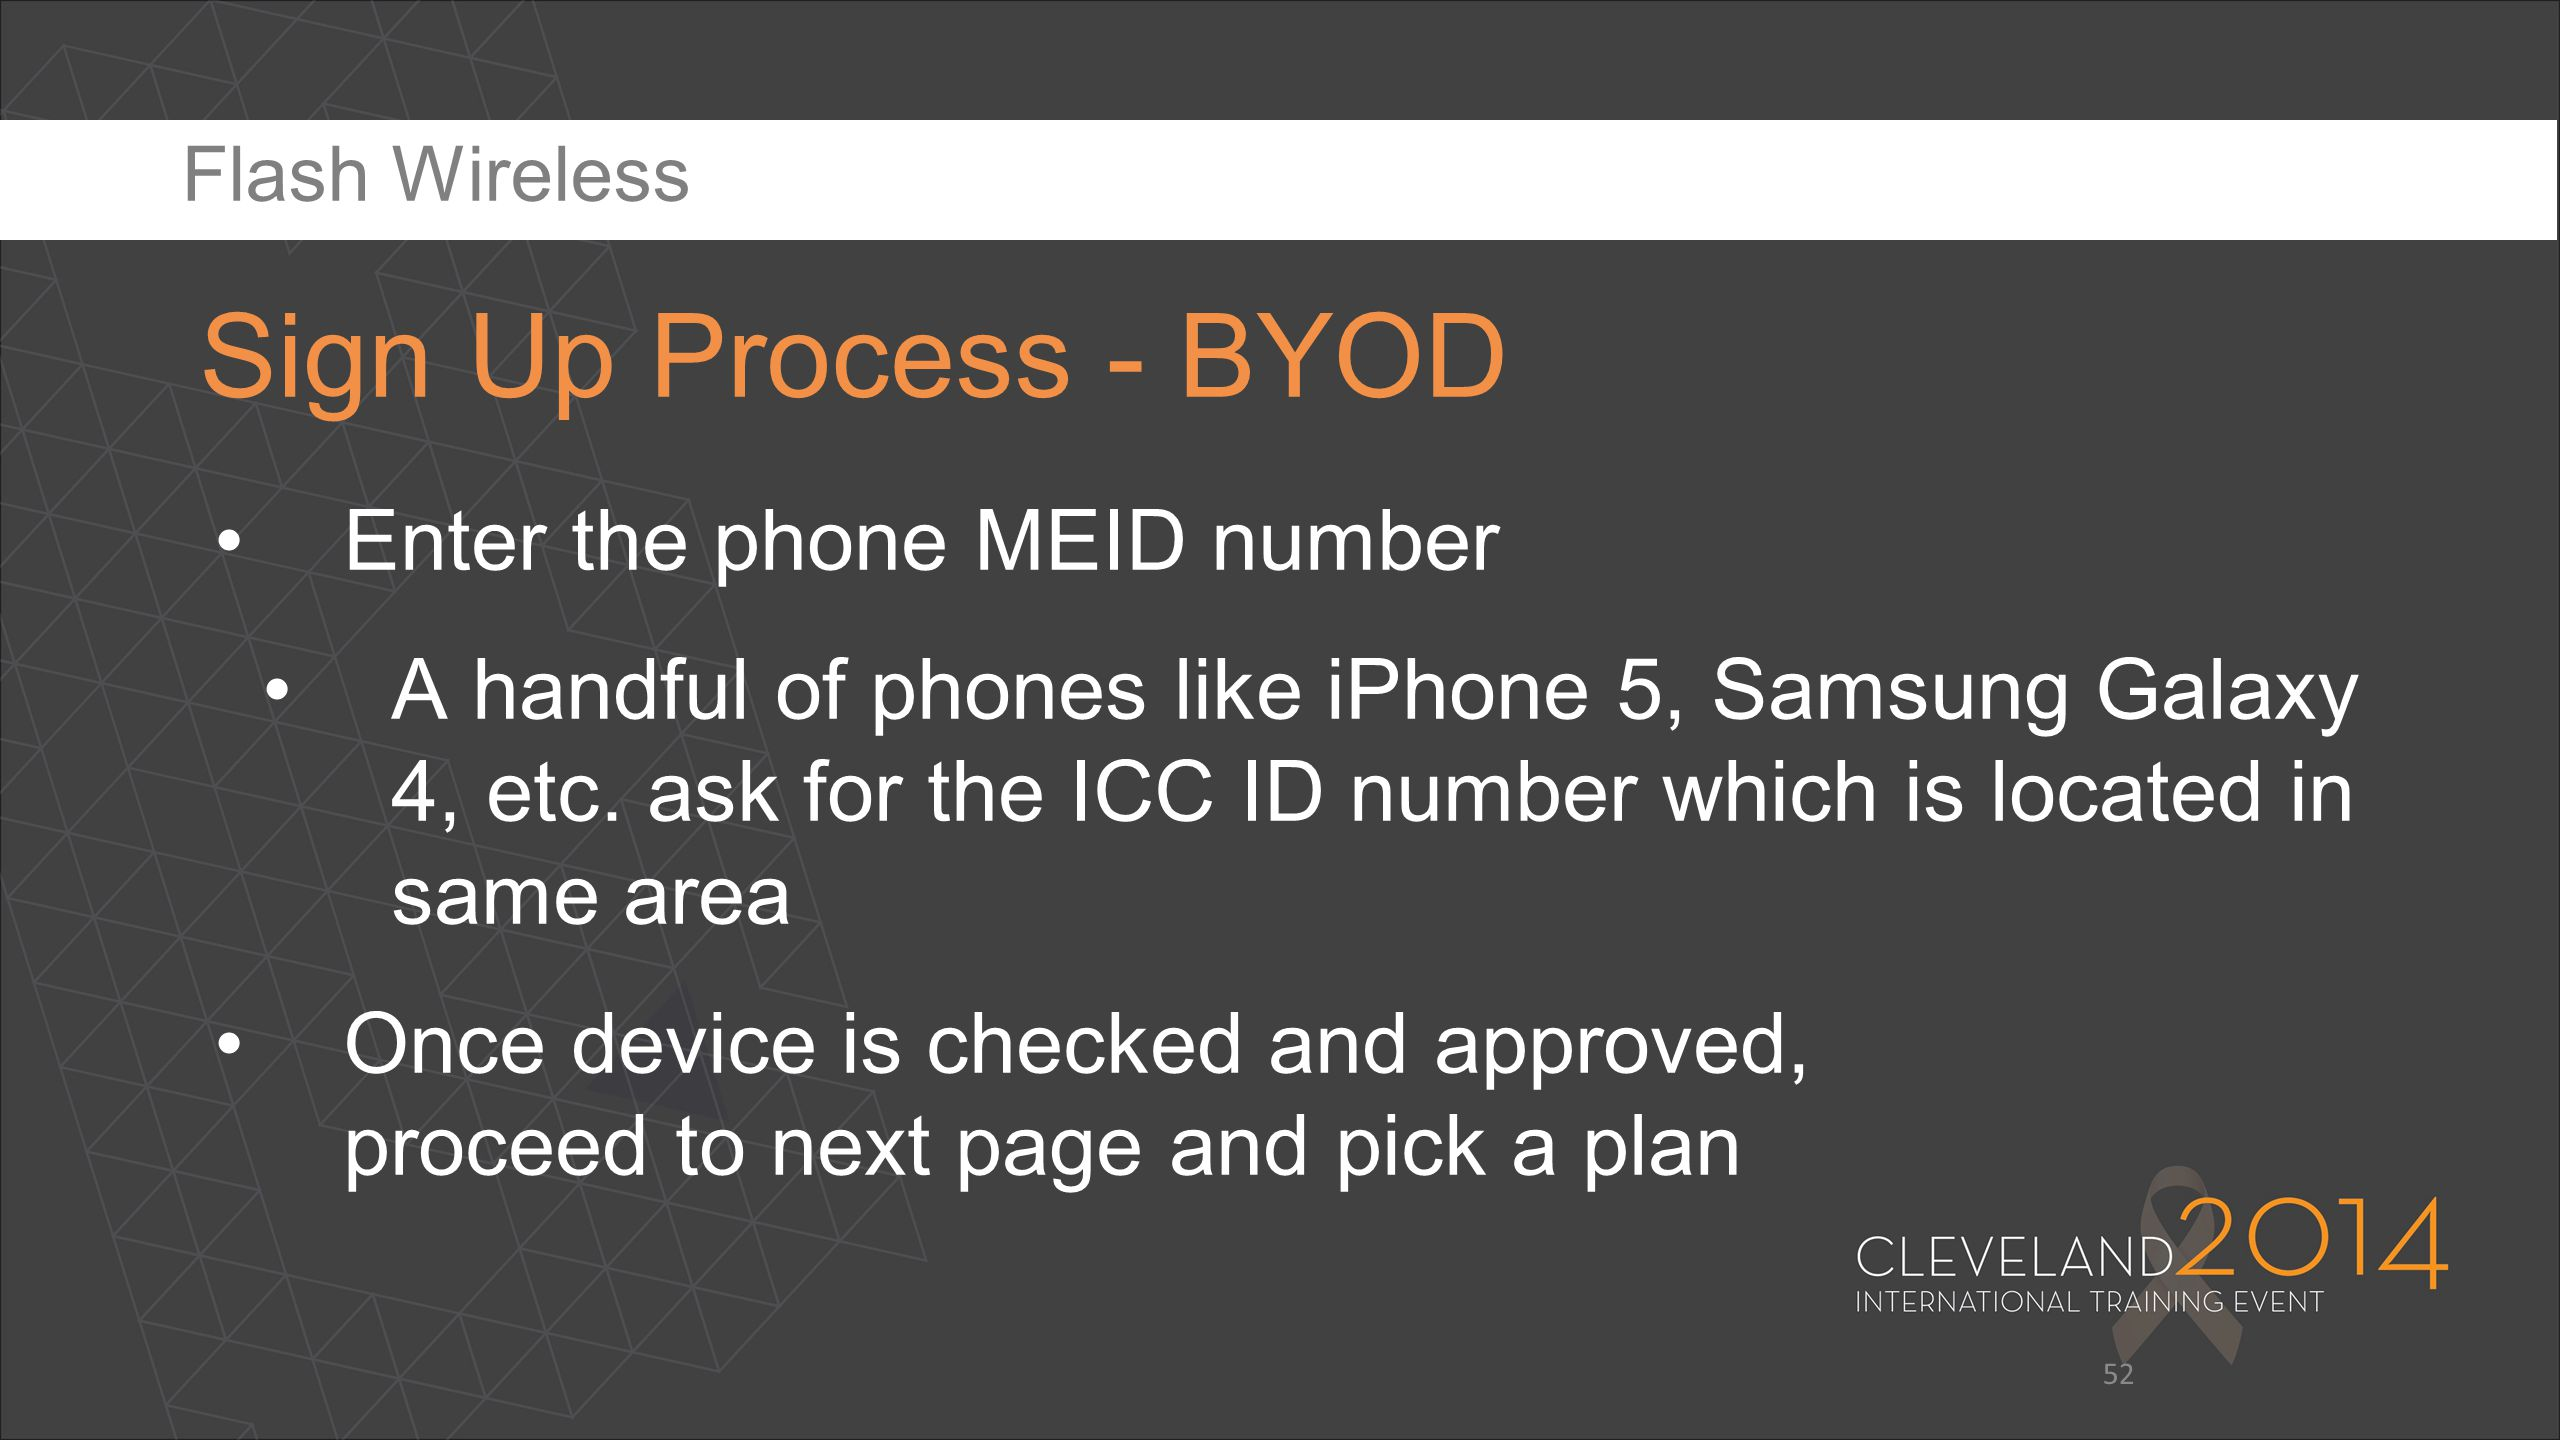 52 Enter the phone MEID number A handful of phones like iPhone 5, Samsung Galaxy 4, etc. ask for the ICC ID number which is located in same area Once